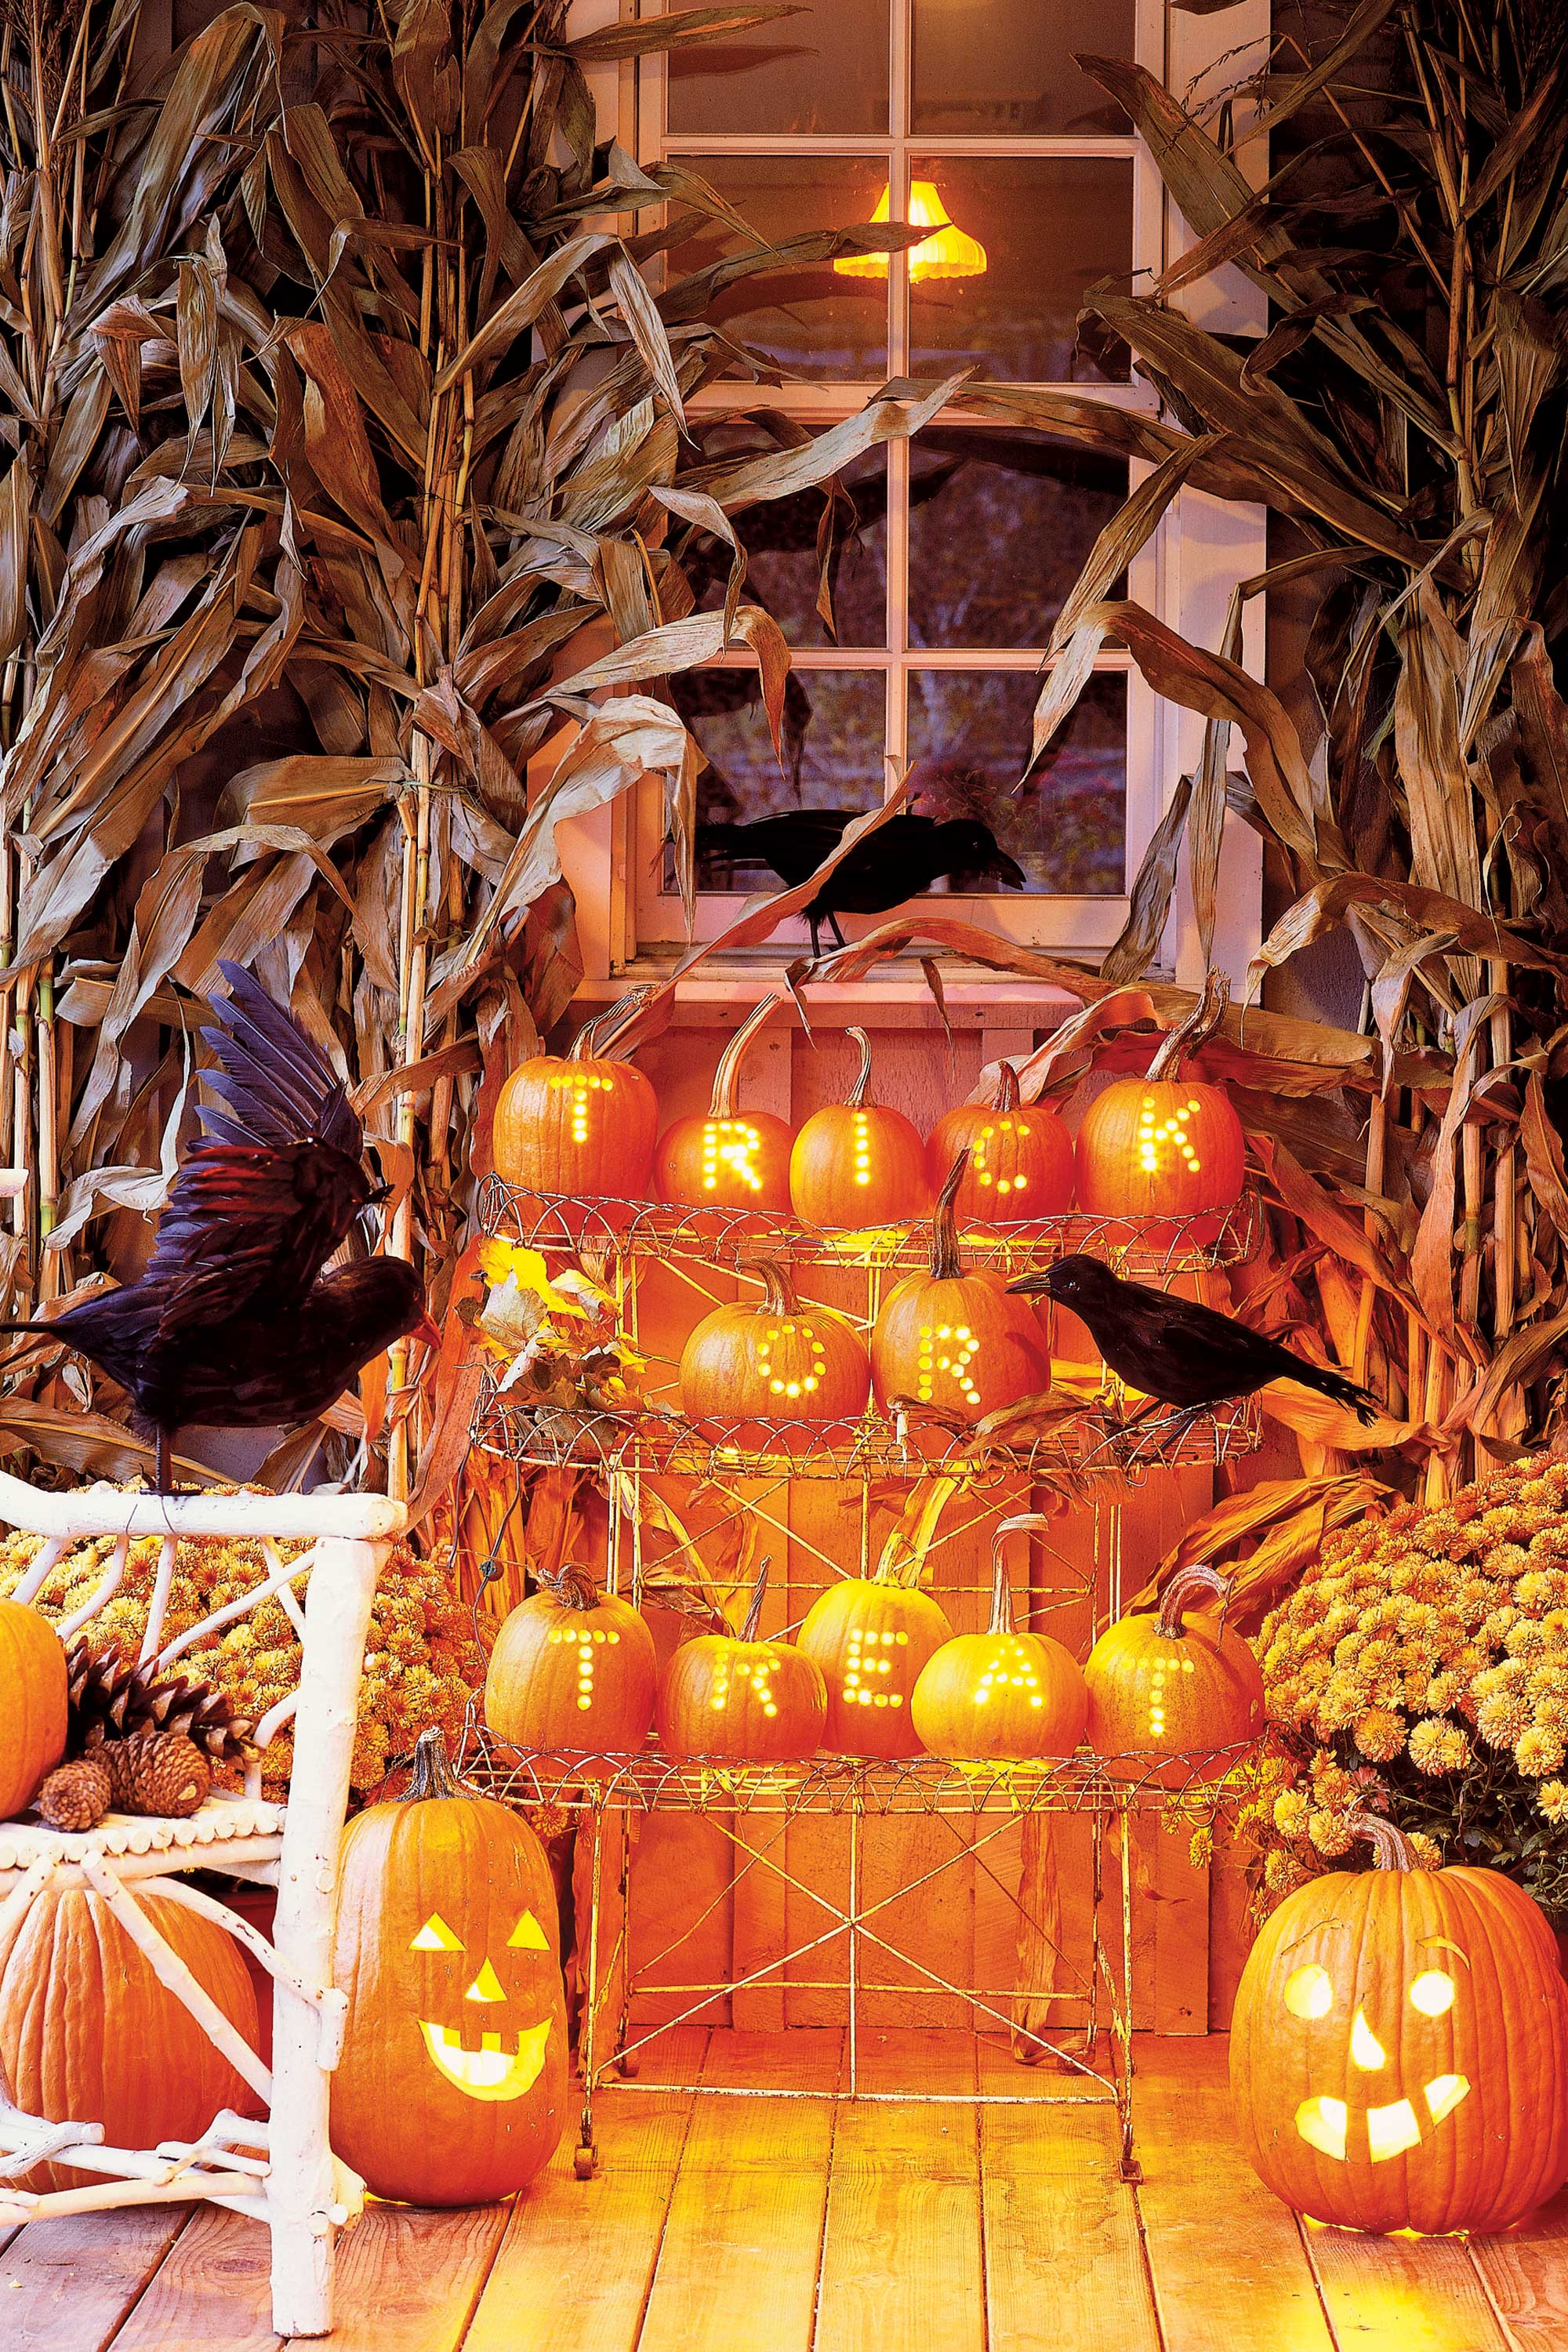 30 Outdoor Halloween Decorations - Easy Halloween Yard and Porch Ideas